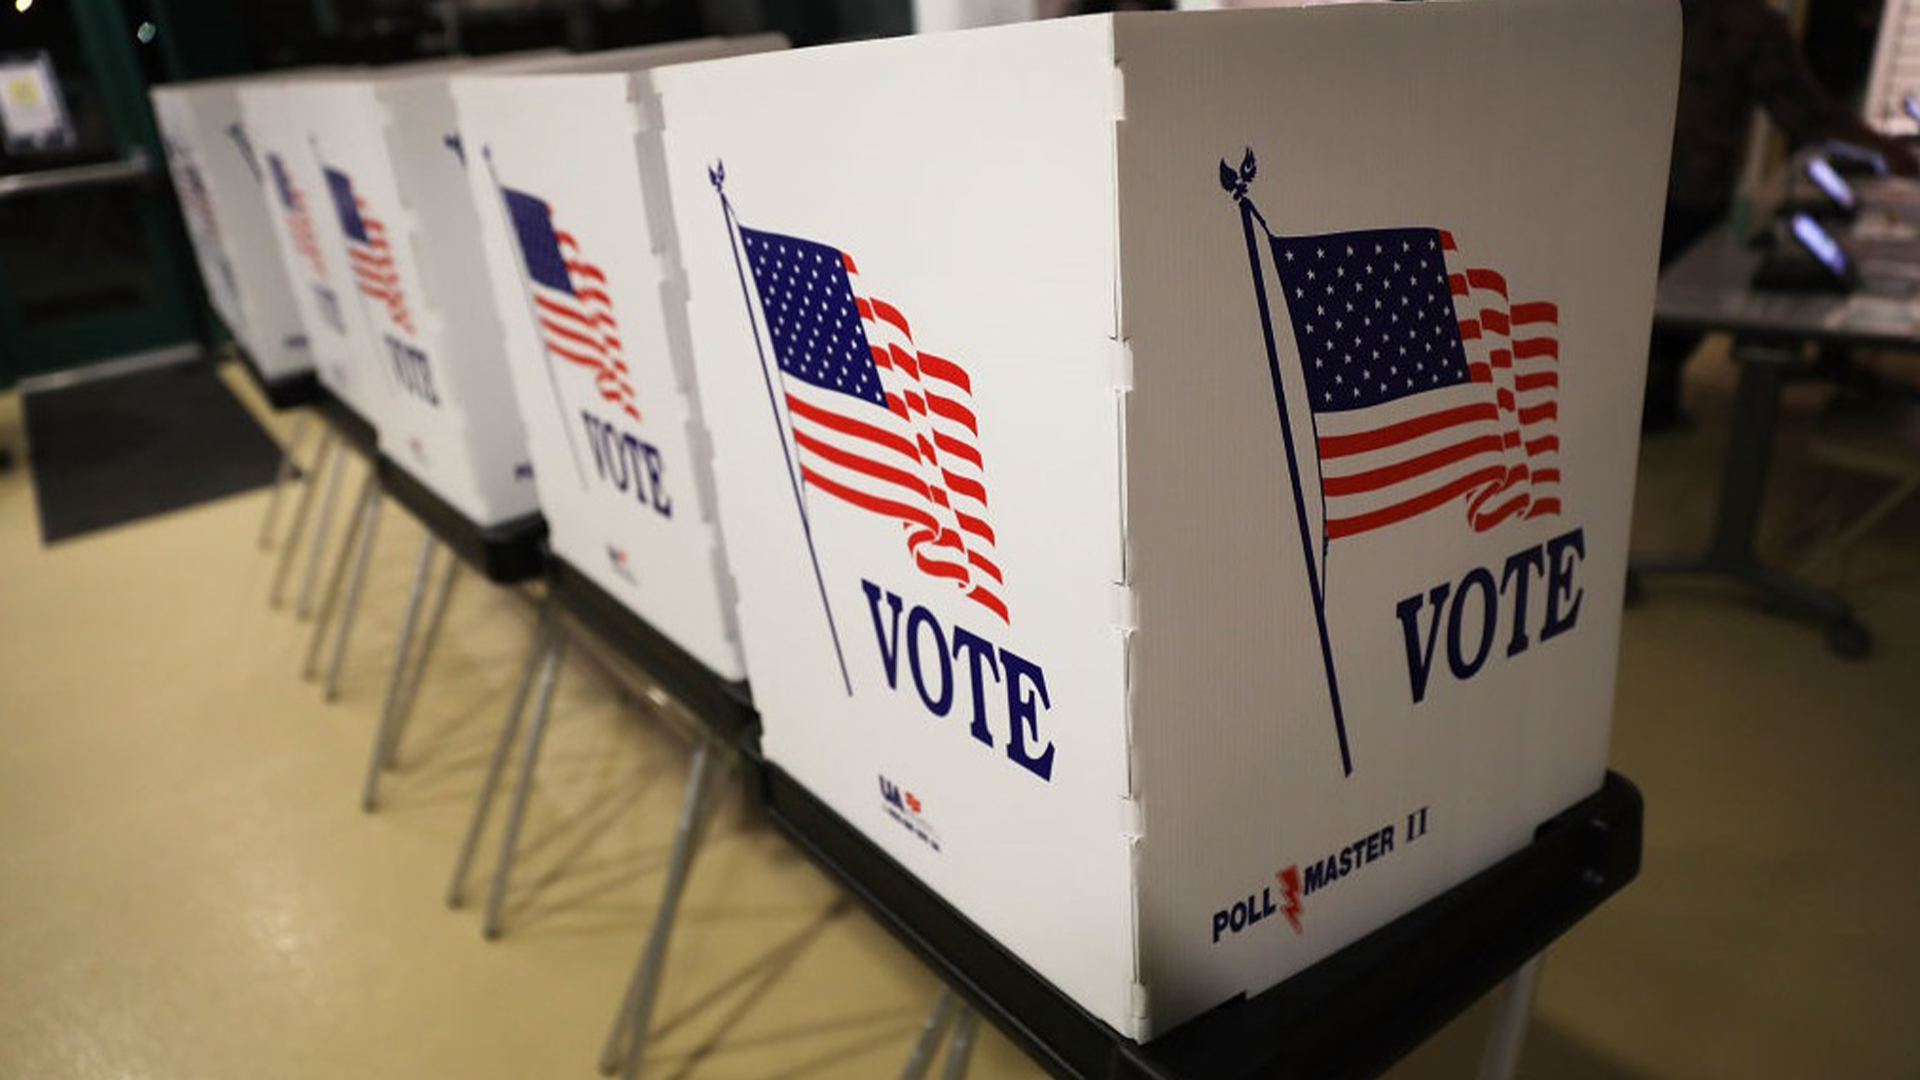 Tomorrow is election day and politicians across the country have their eye on Virginia's races.